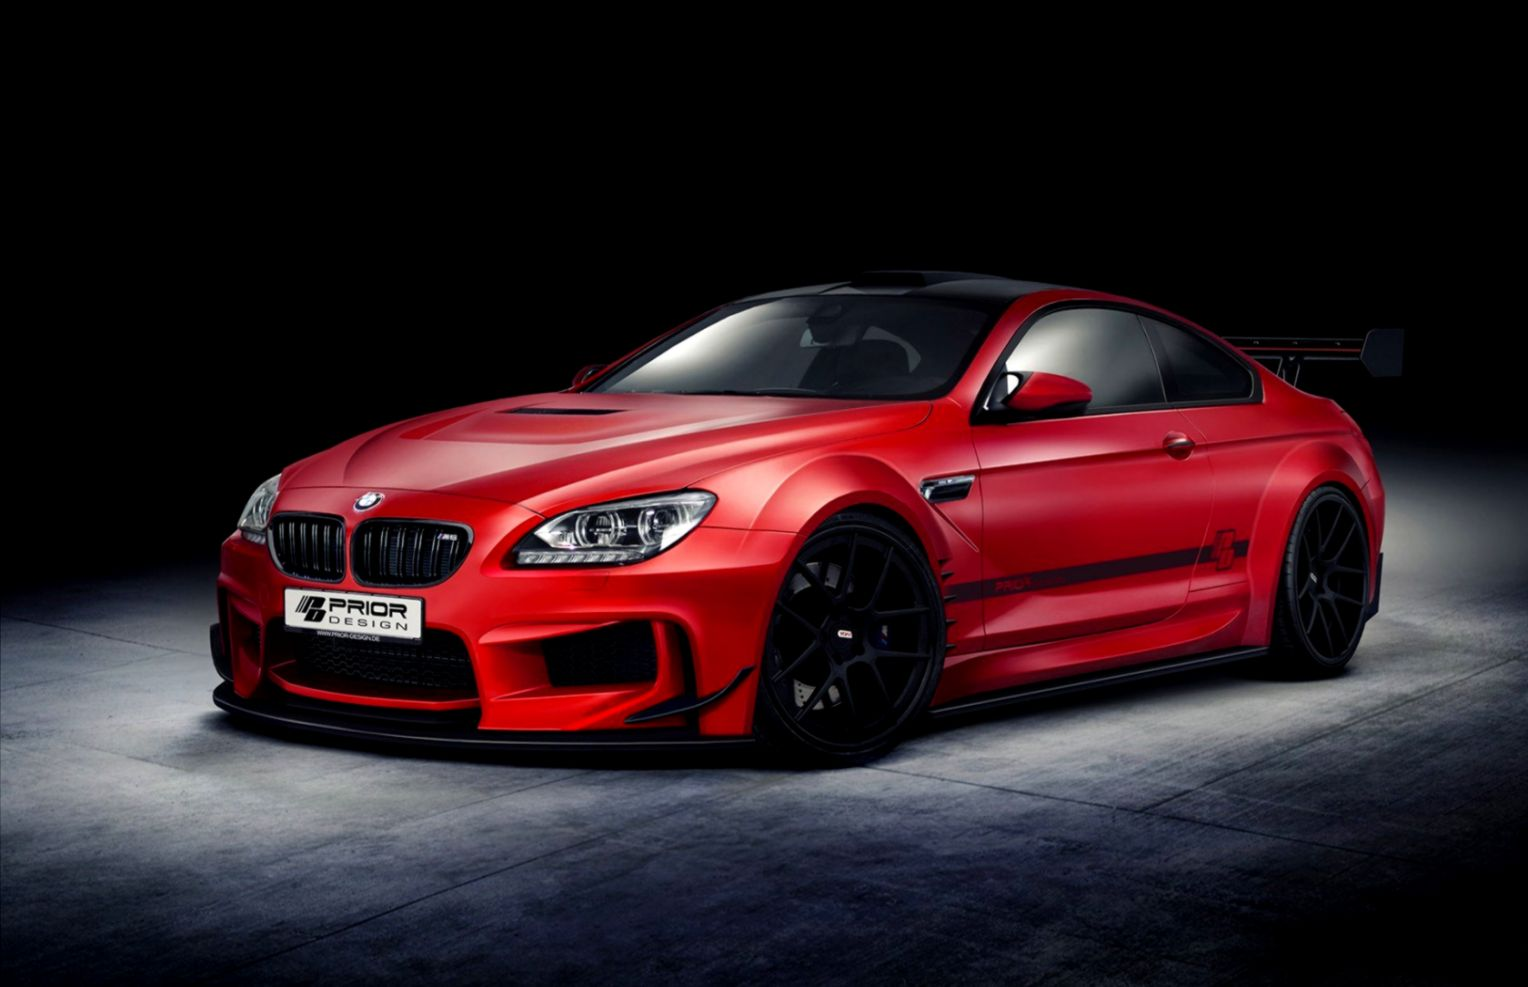 Bmw M6 Wheels Tuning Car Hd Wallpaper Wallpapers Abstract